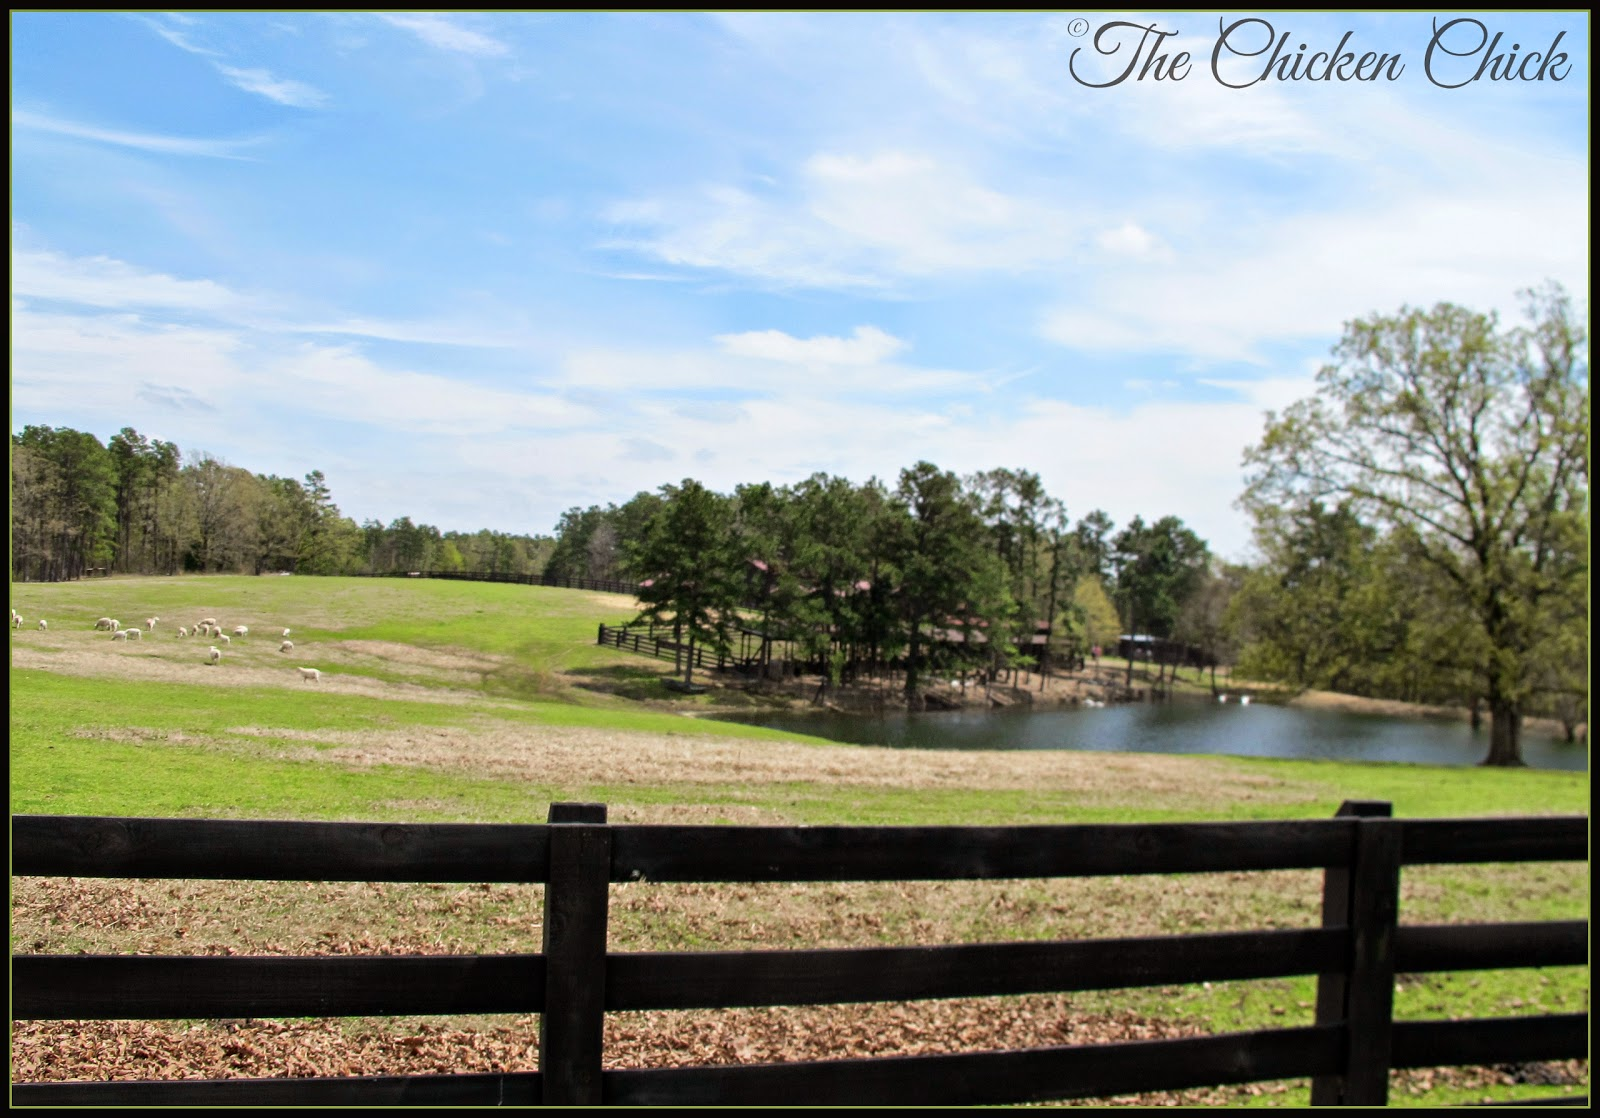 The sheep pasture next to the Waterfowl Mecca.